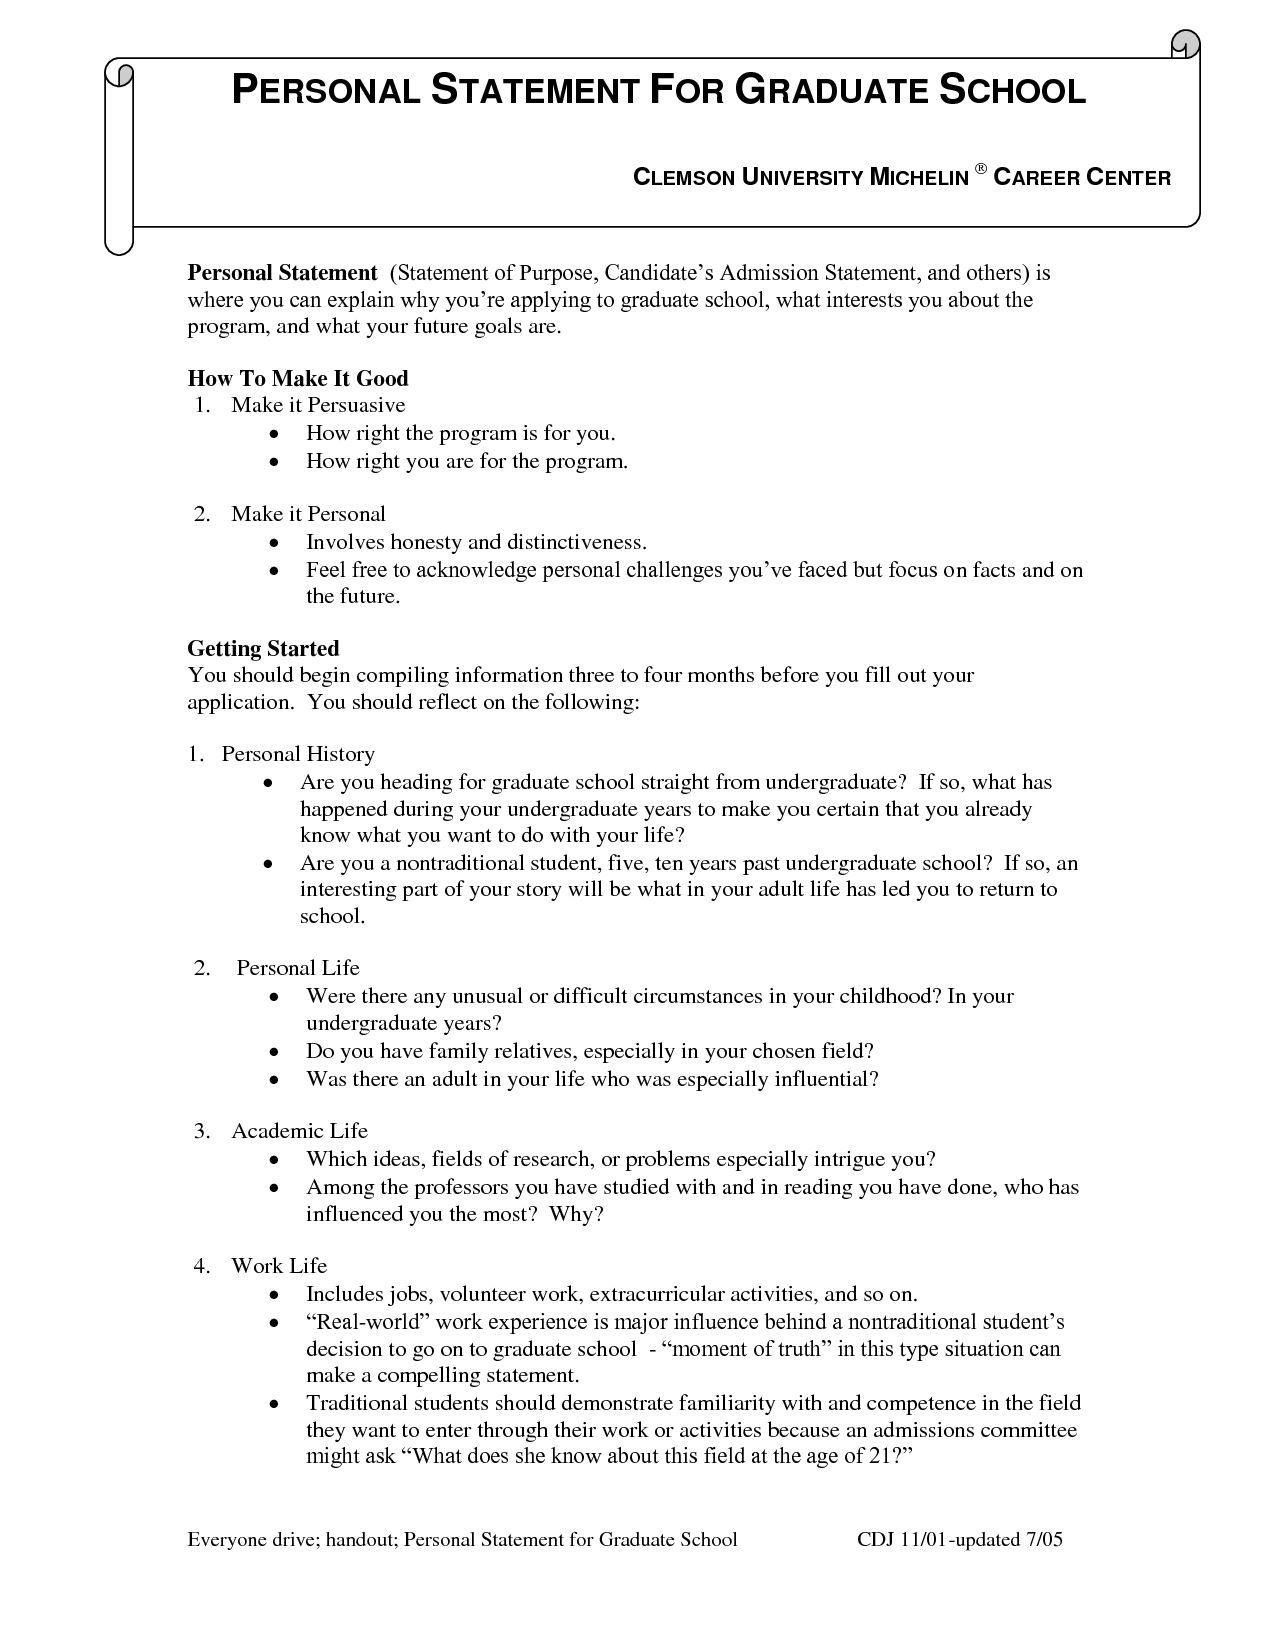 Example Of Personal Statement For Graduate School In Counseling History Essay